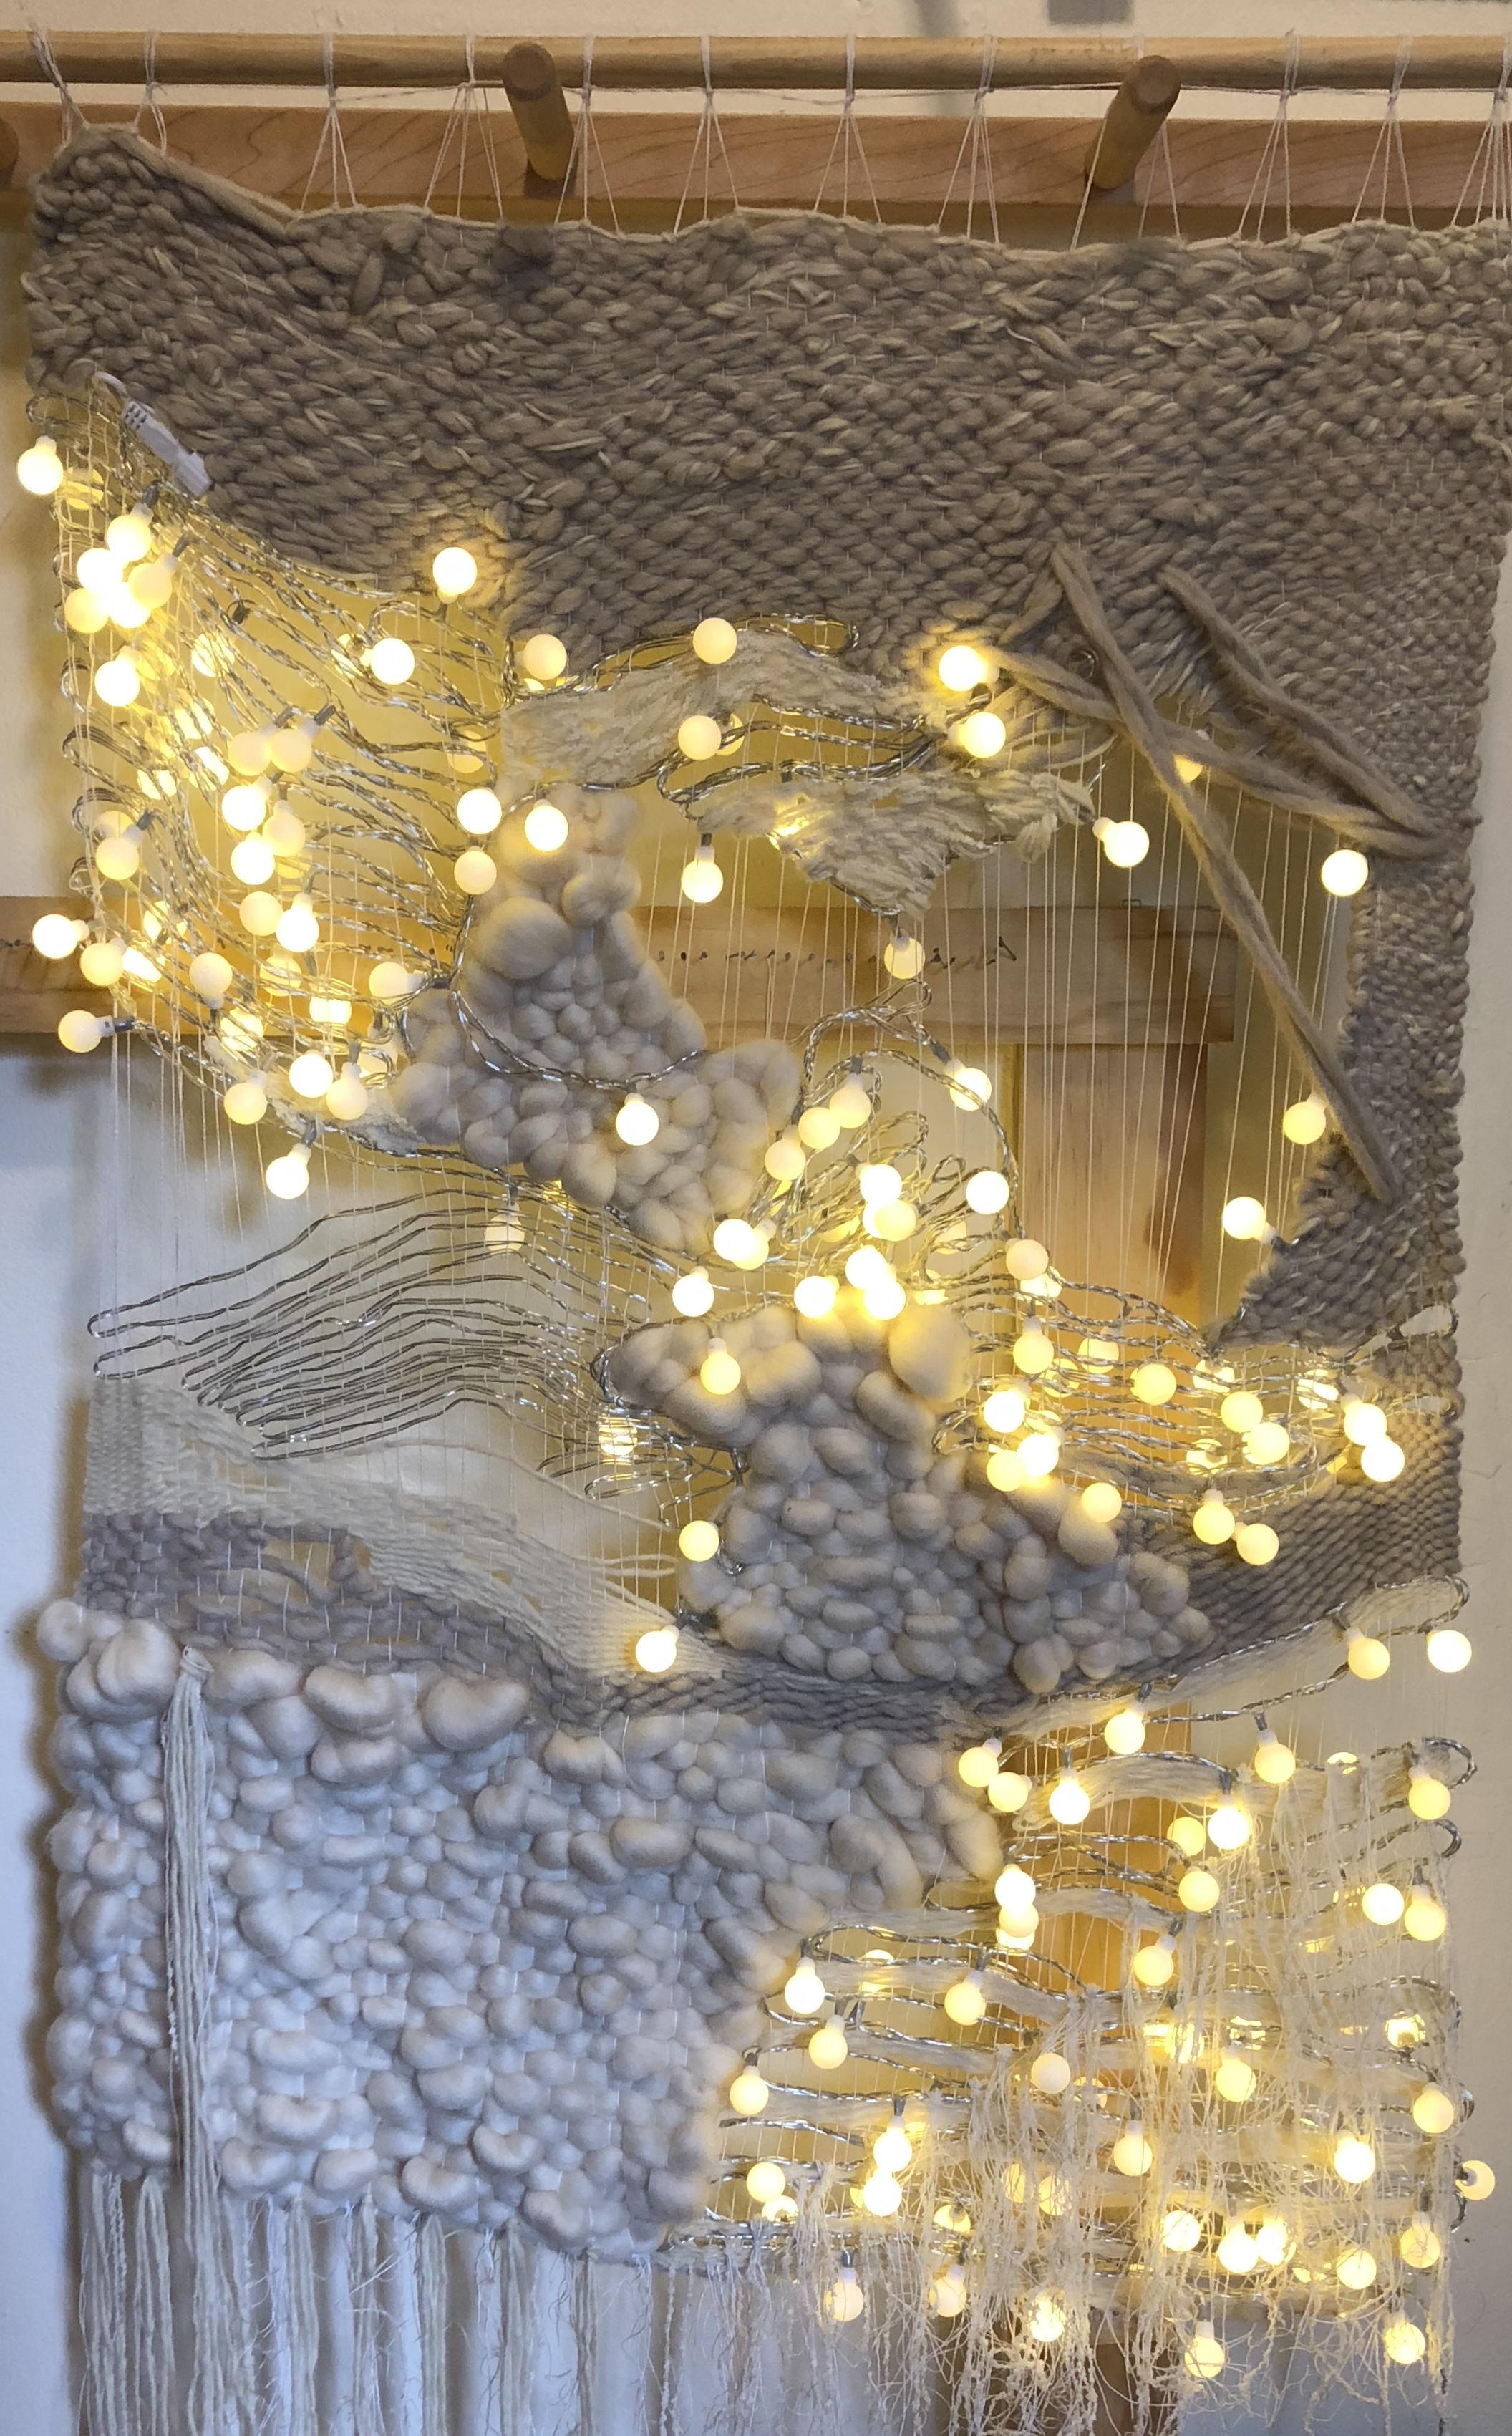 Our warmth, it beckons something more   (2018)  wool, LED lights, cotton, silk, roving  46 x 25 x 2in